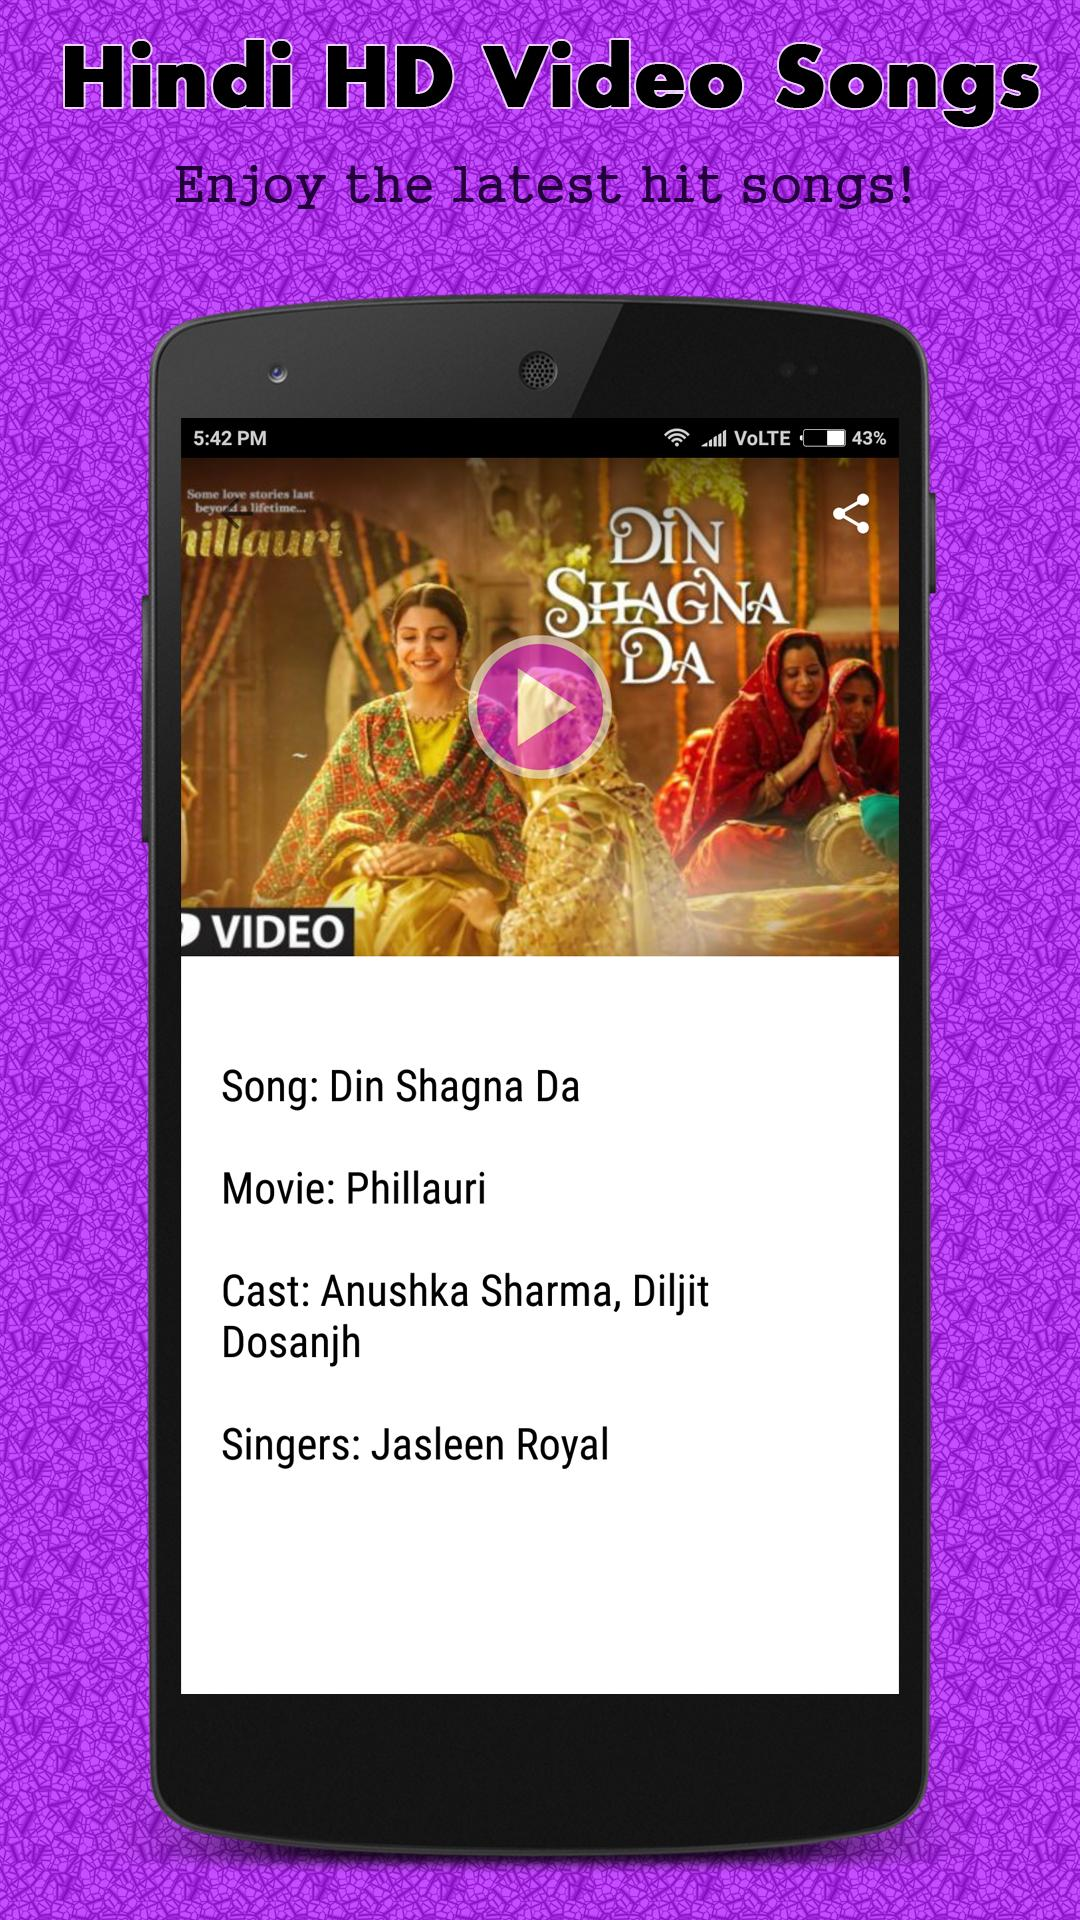 Hindi HD Video Songs for Android - APK Download